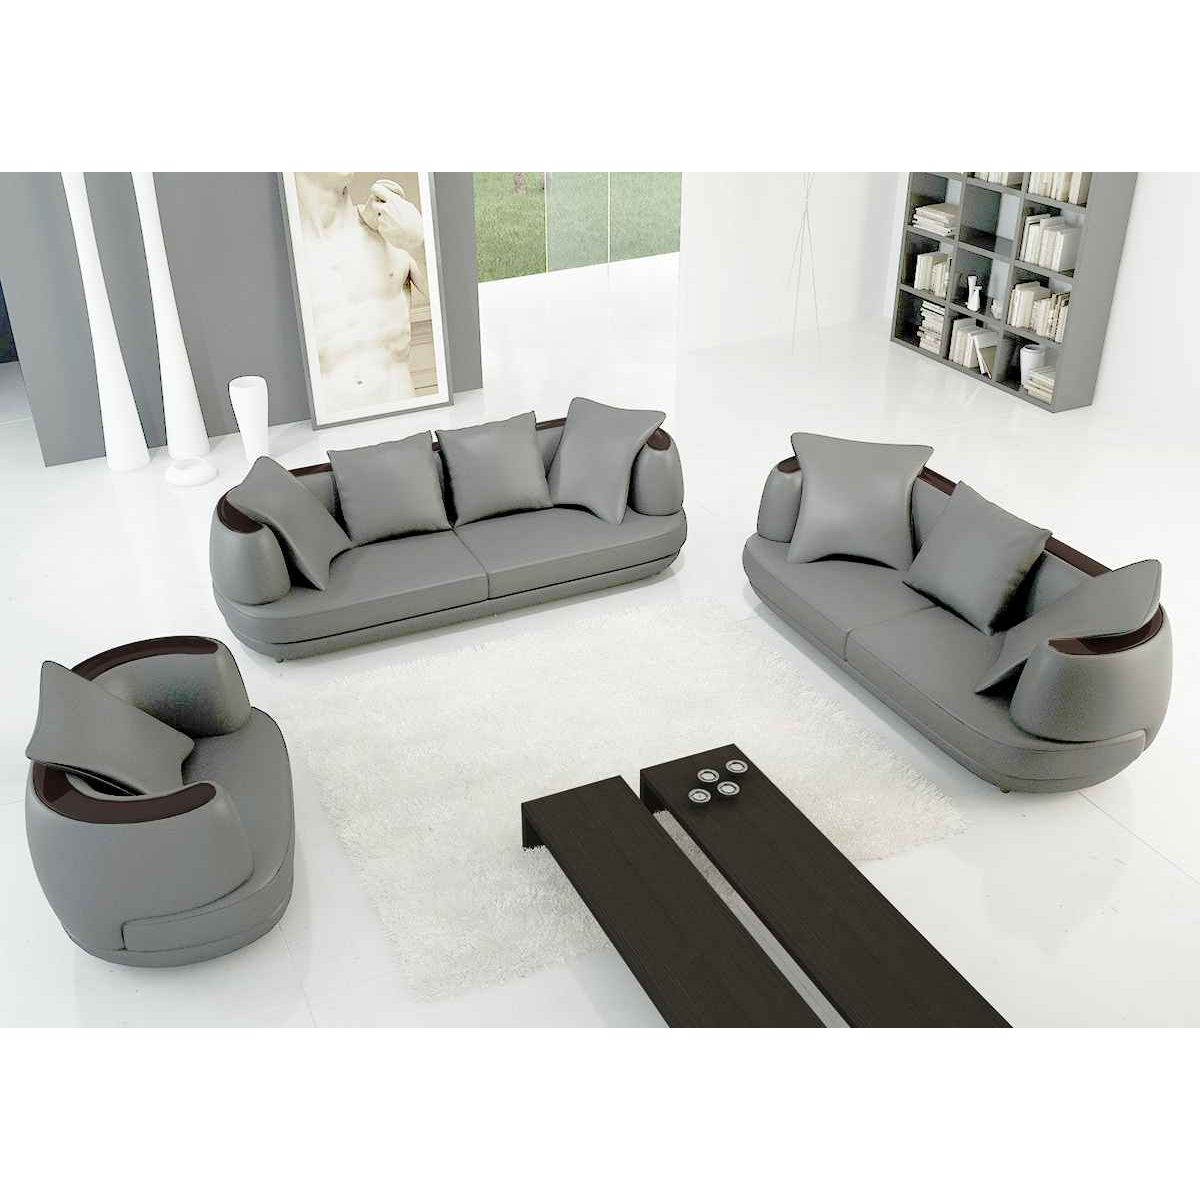 Deco in paris ensemble canape 3 2 1 places en cuir gris for Canape 2 places gris